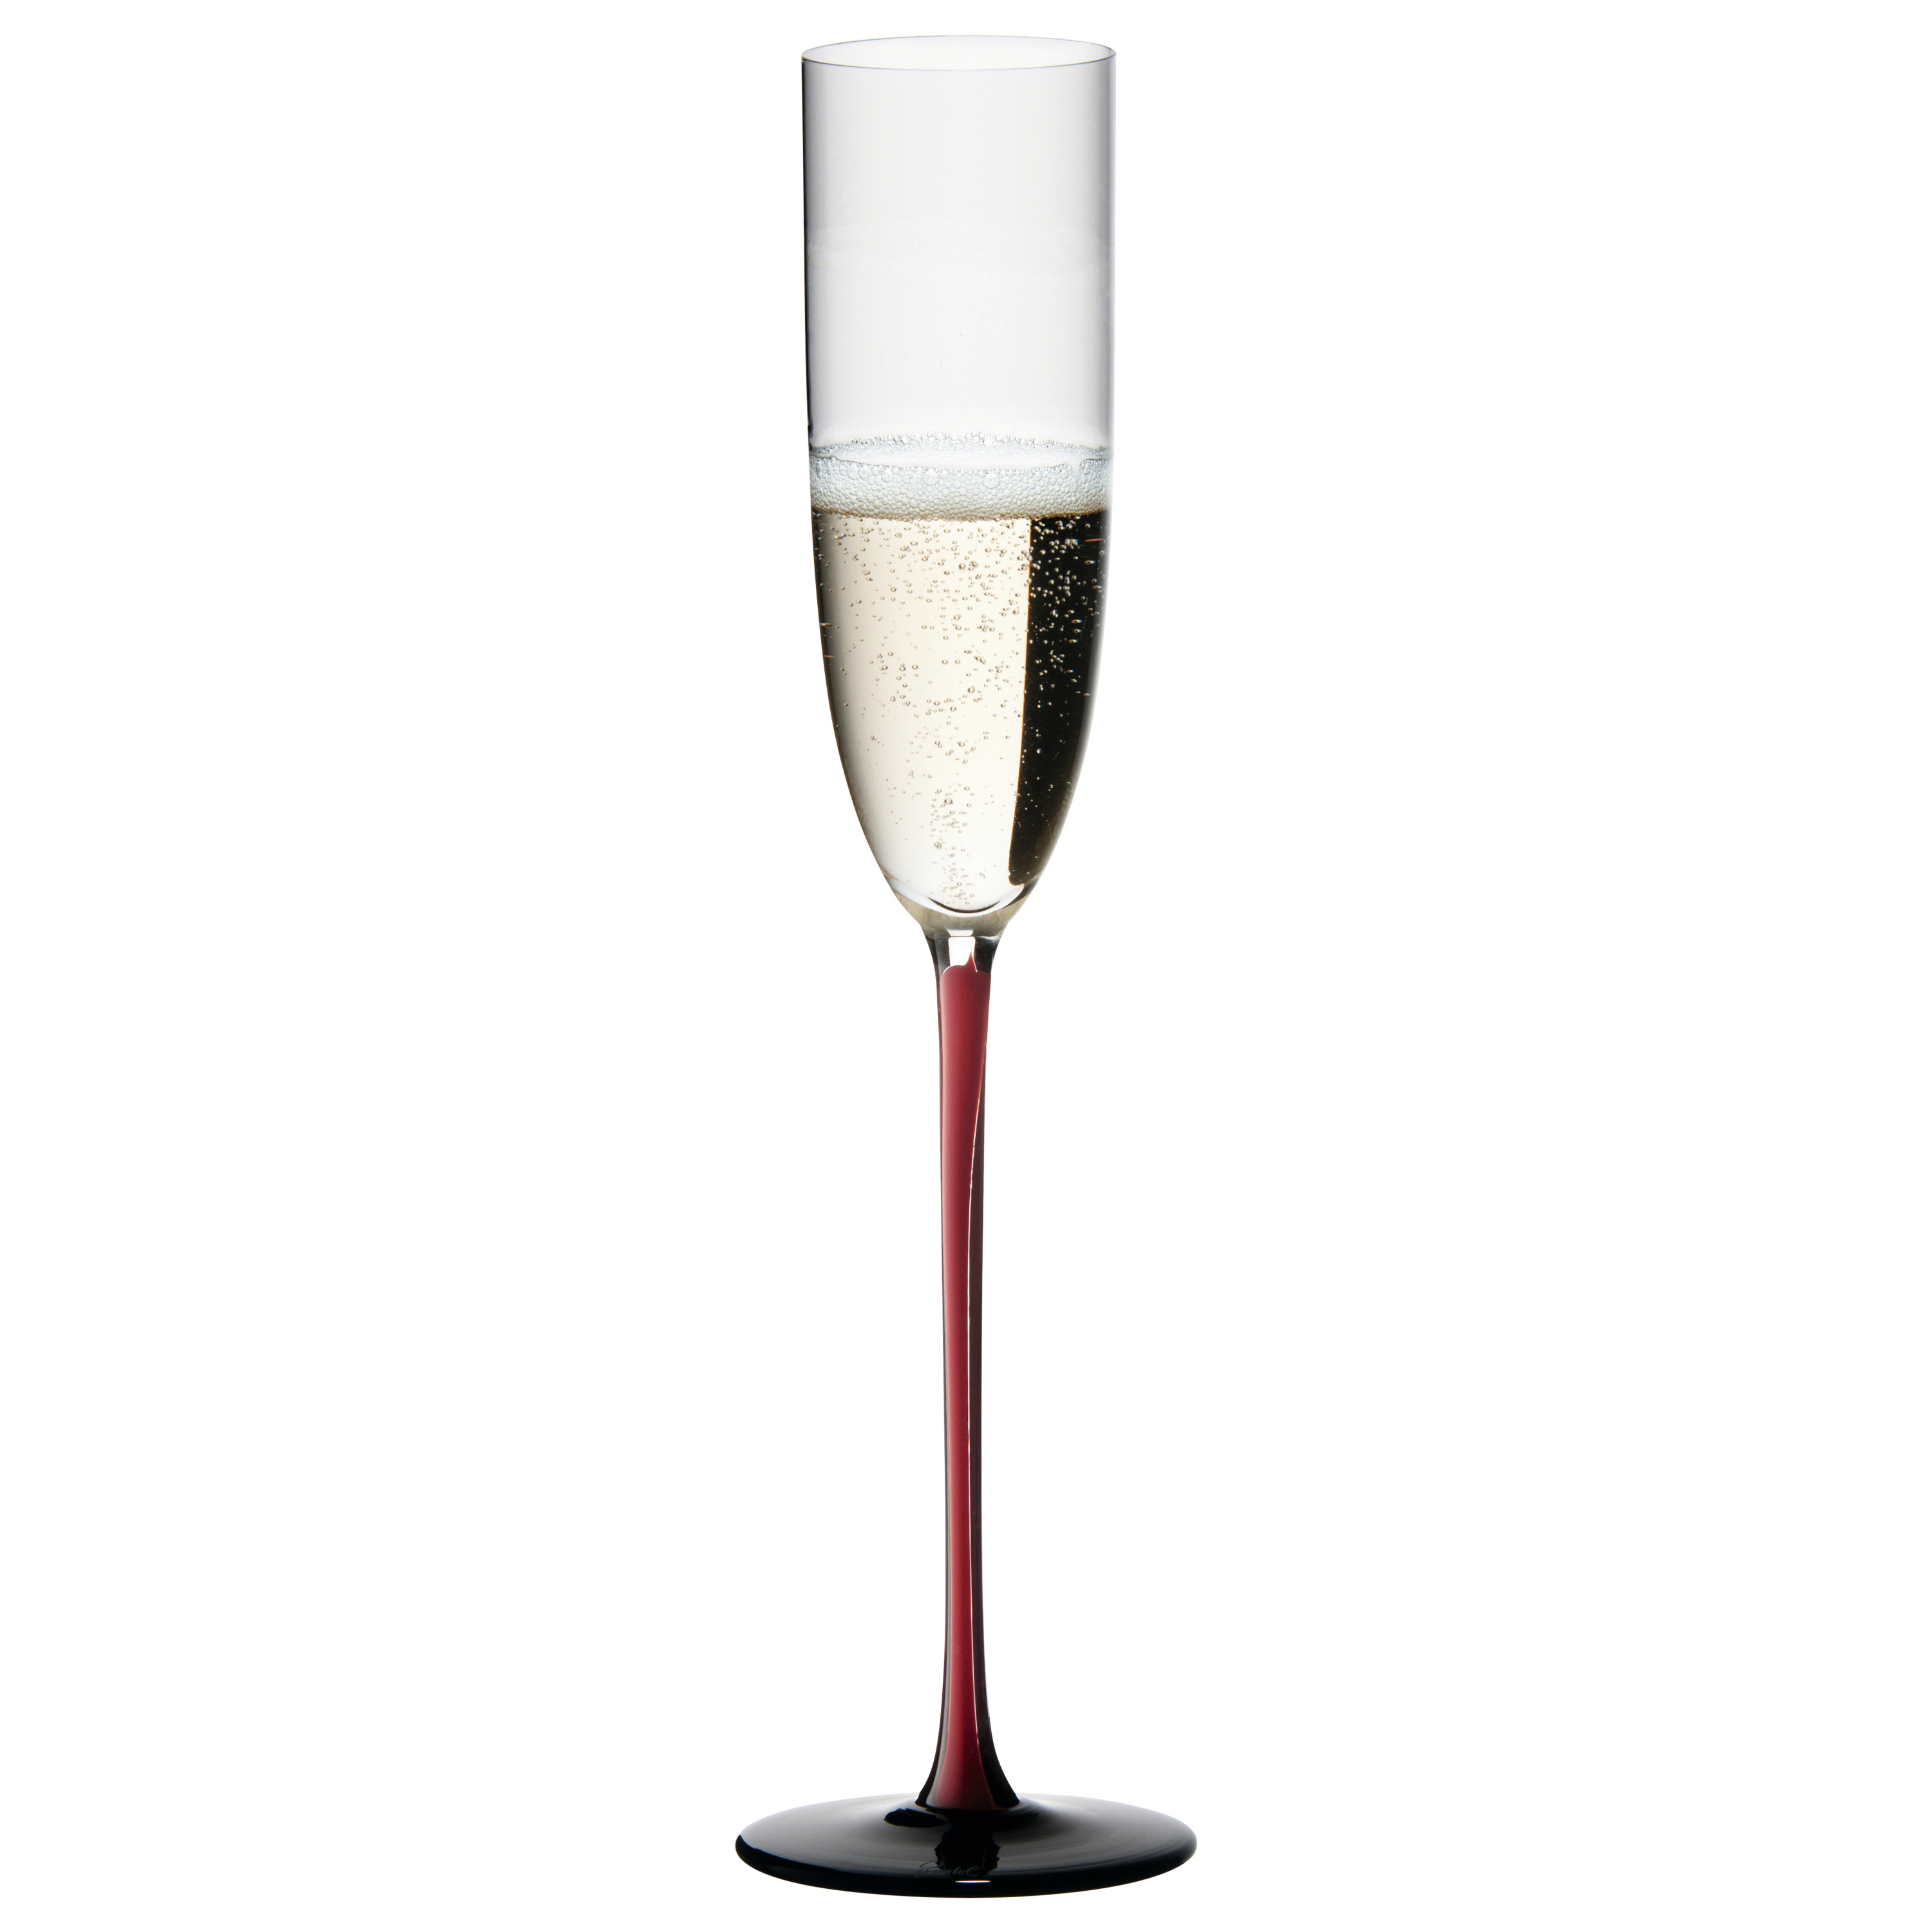 Riedel Sommeliers Black Tie Champagne Flute, 6.75 Ounce